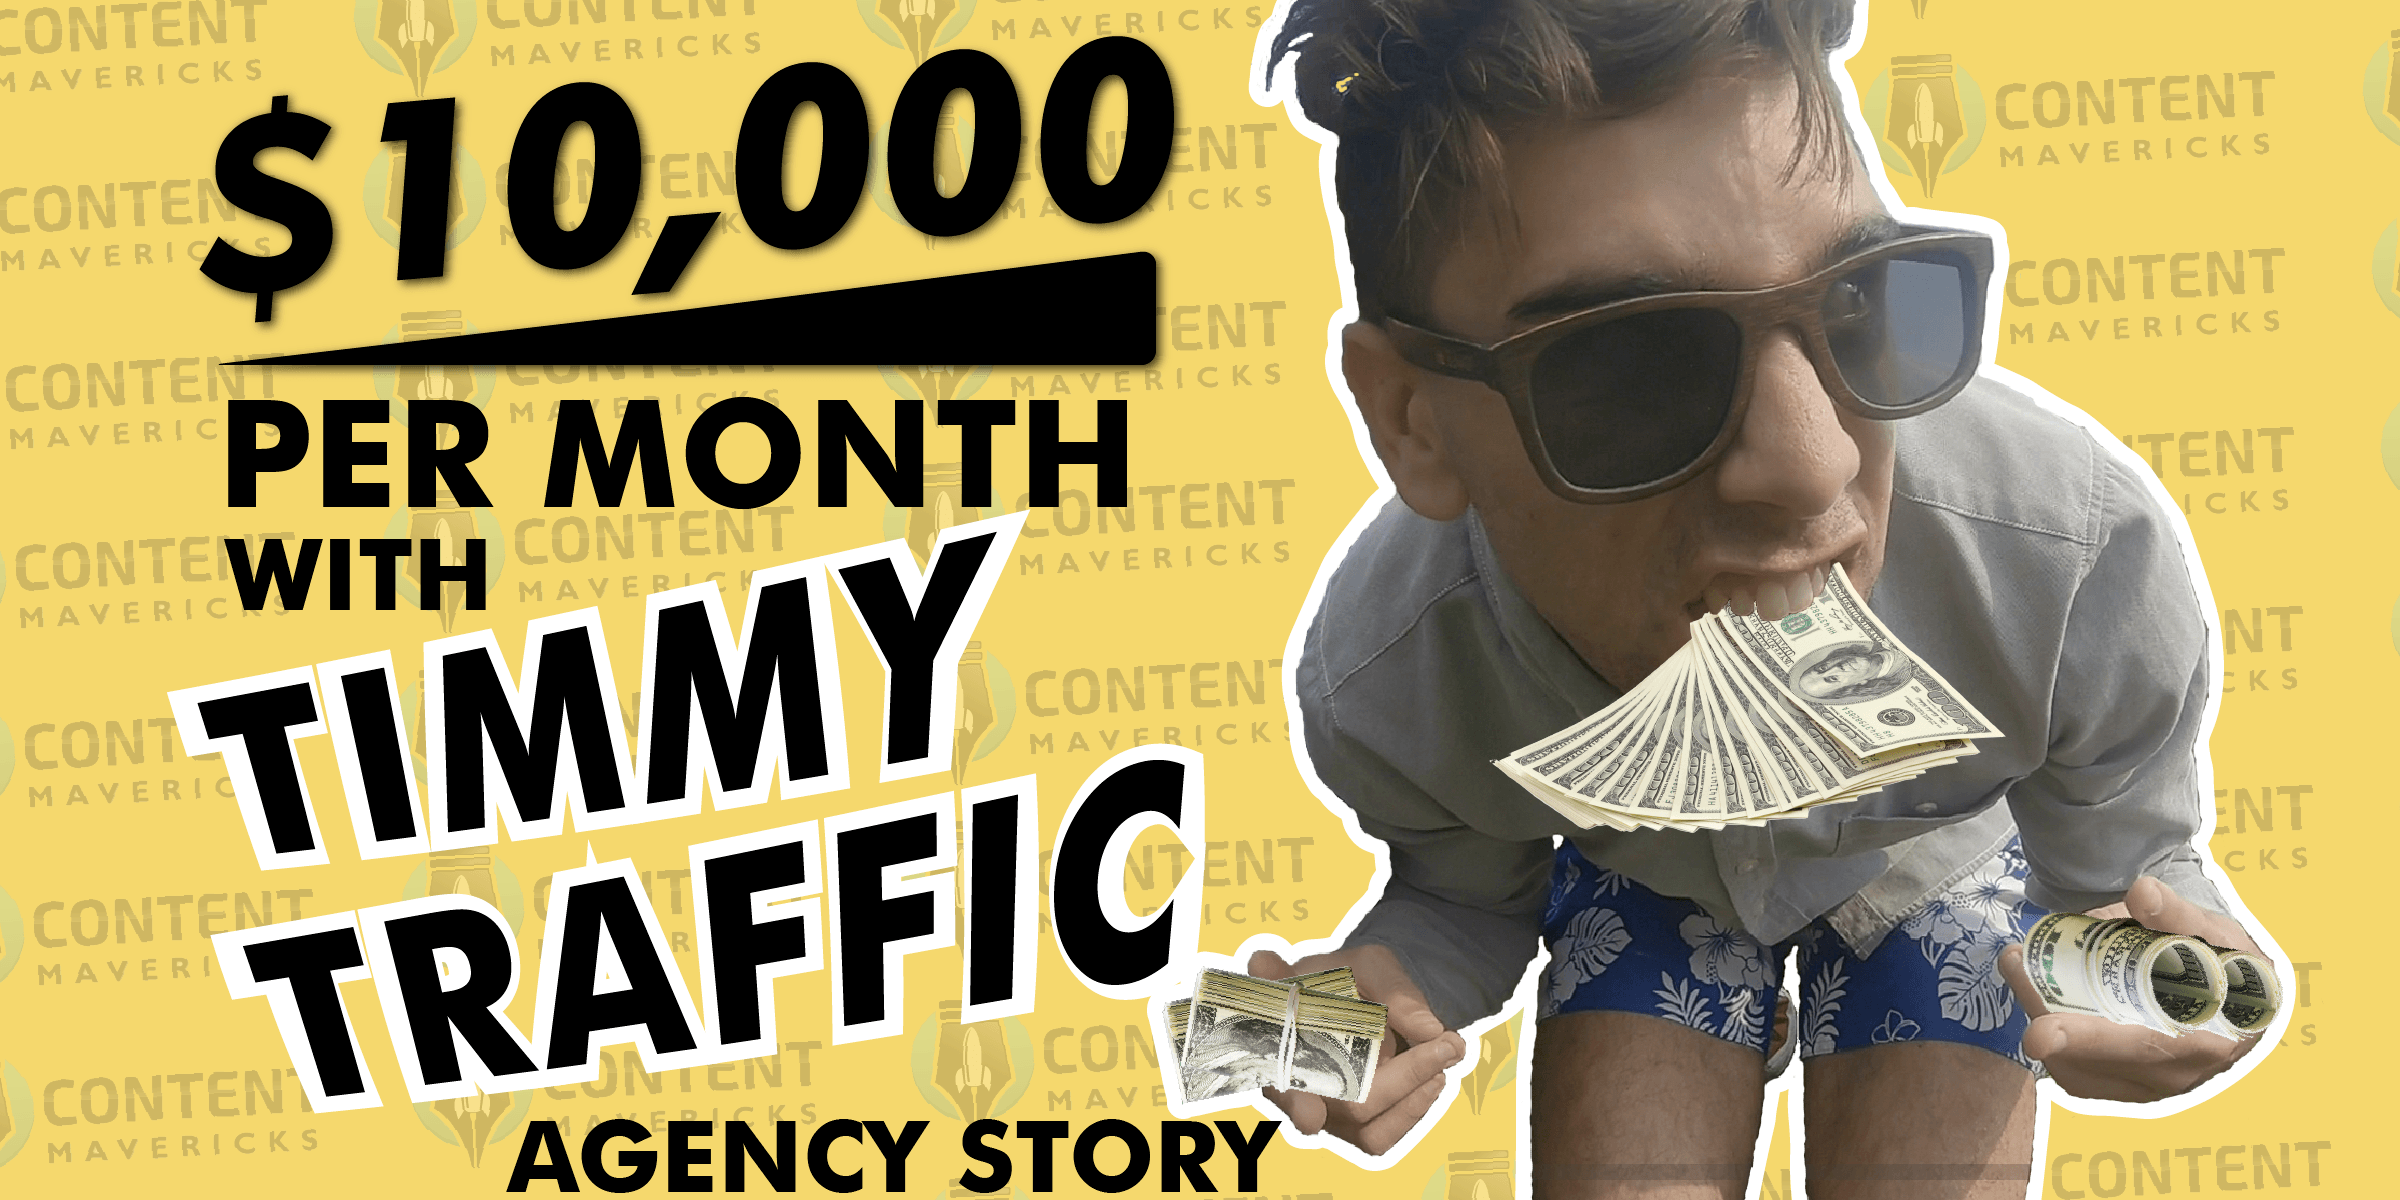 timmy traffic featured image